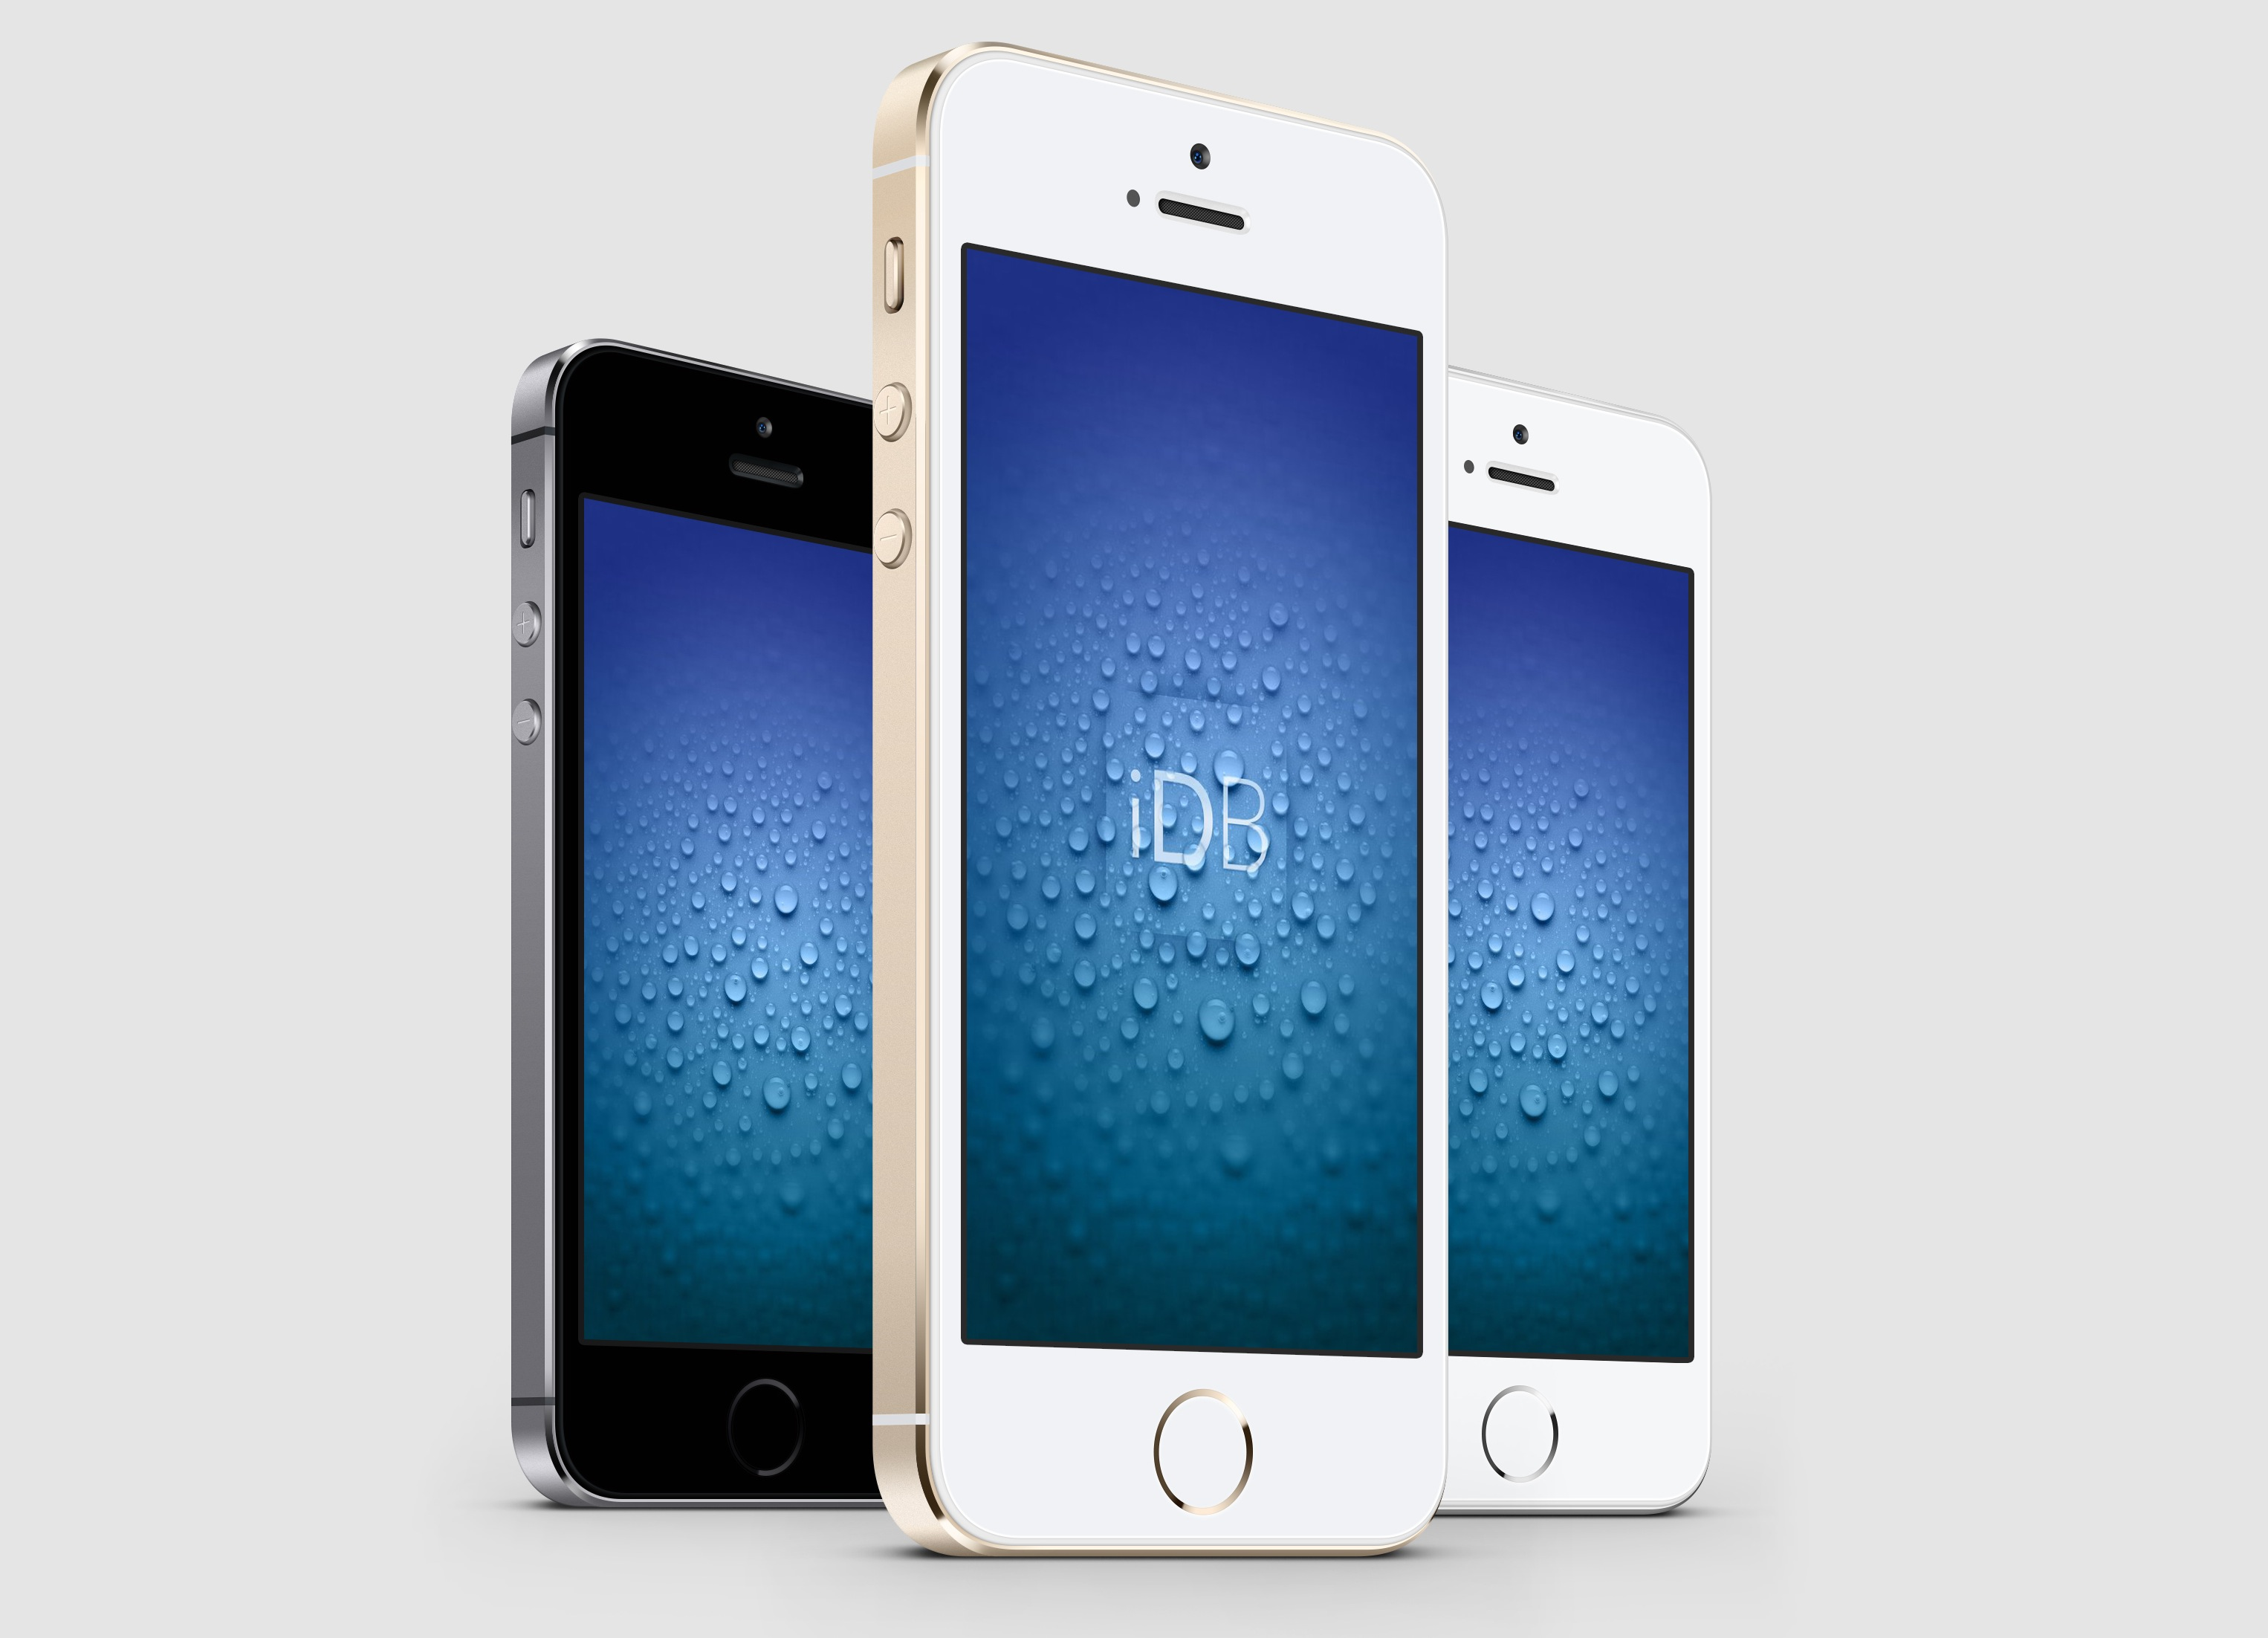 Wallpaper iDB droplet splash